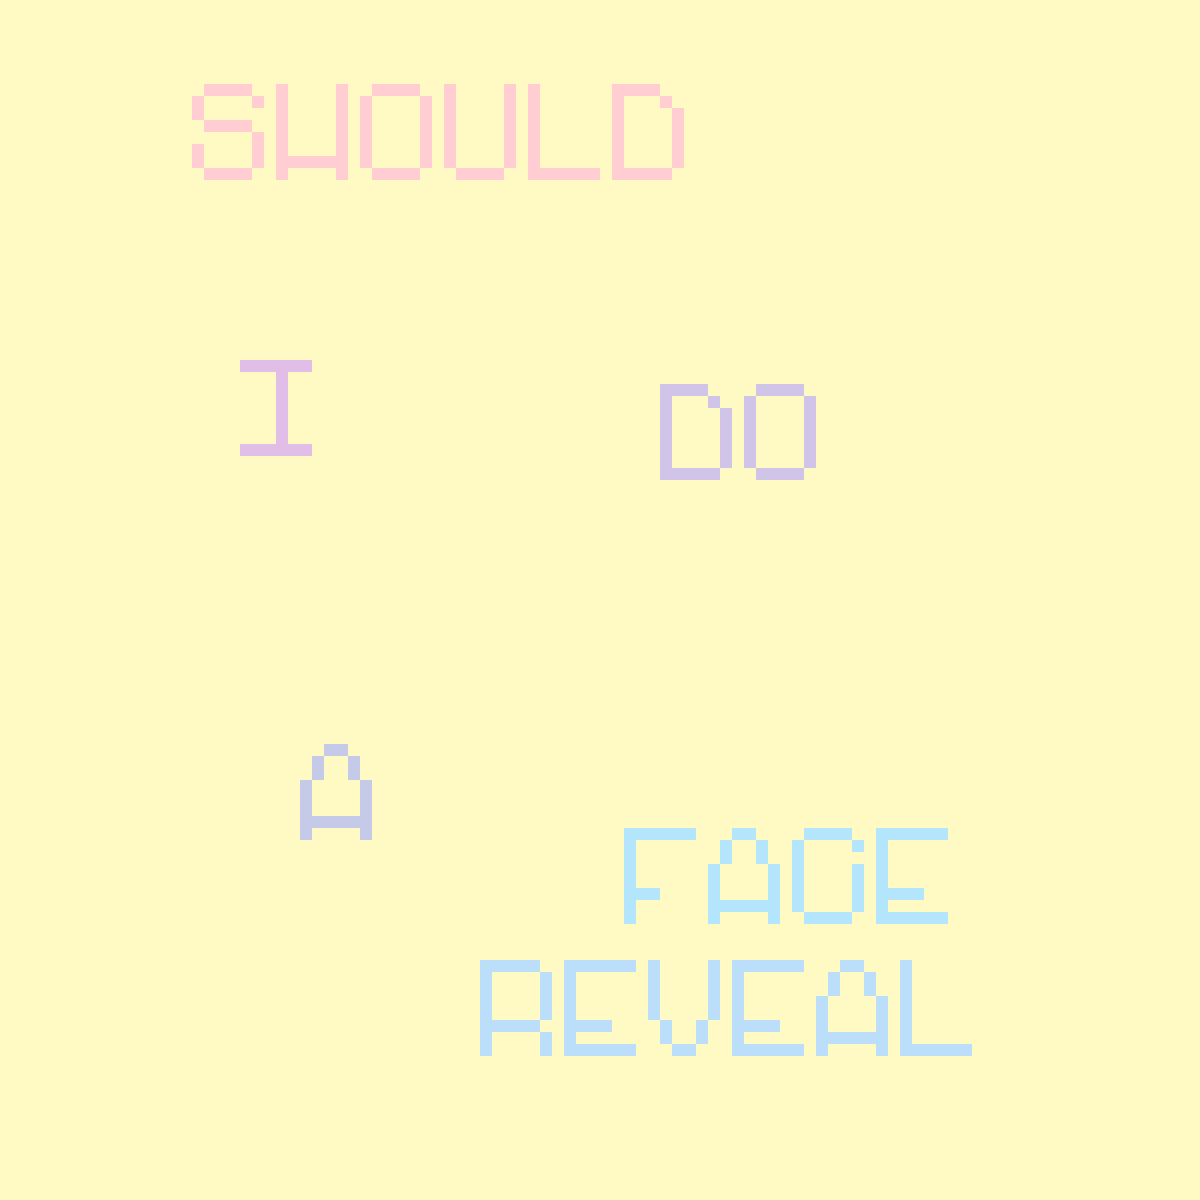 Should I do a face reveal? by AudreyRae